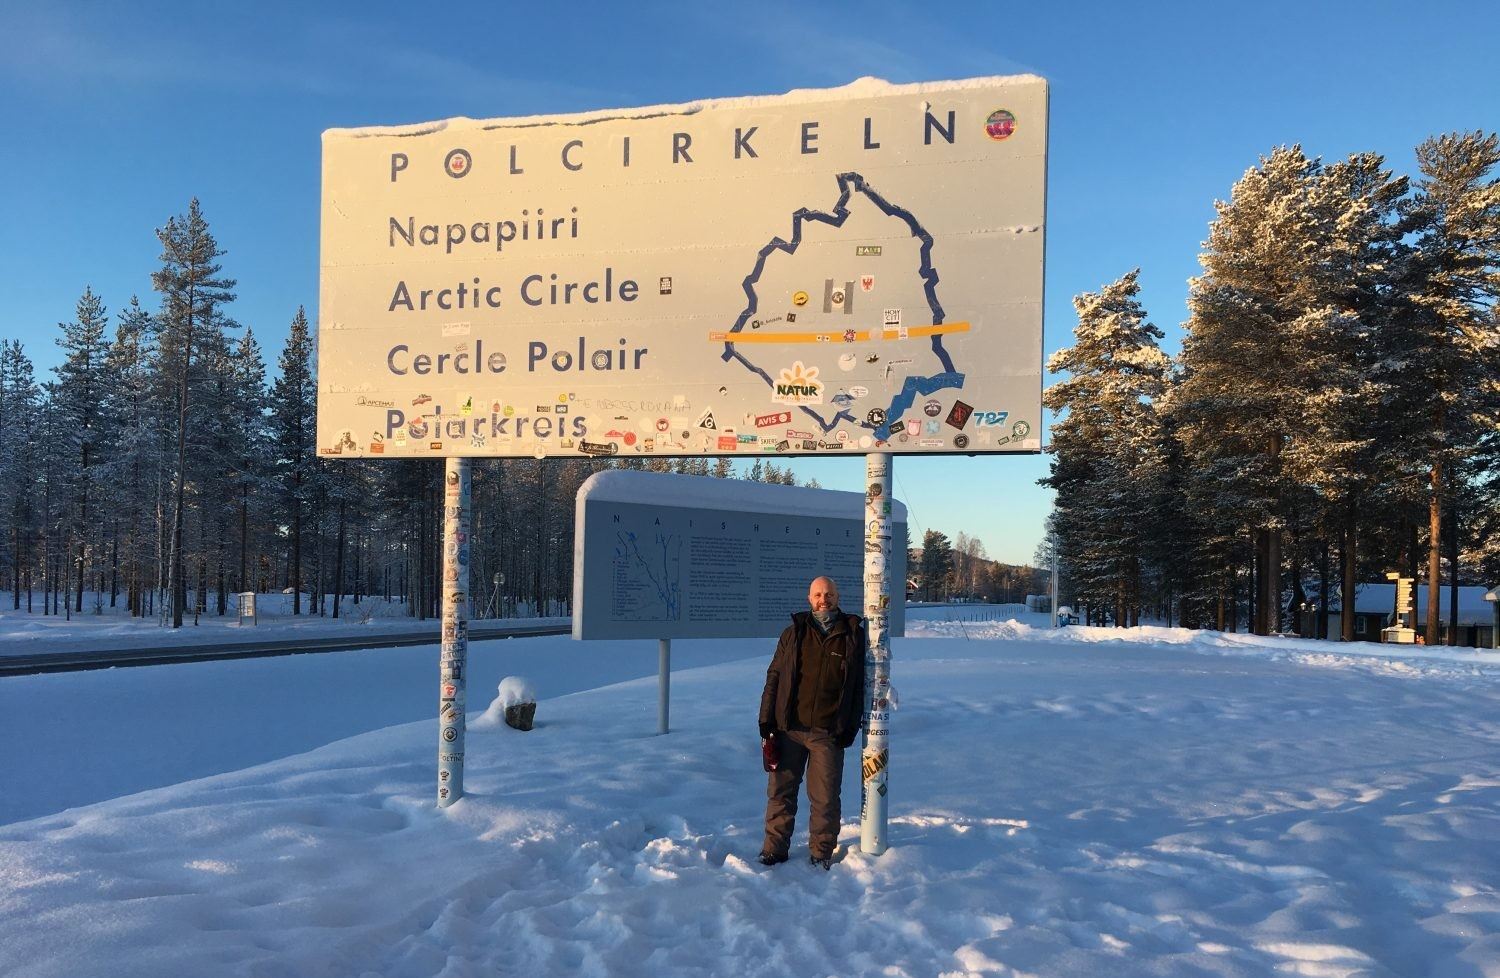 After a two-hour drive north of Luleå through reindeer country, we reach the Arctic Circle. Credit: Chris Bramley